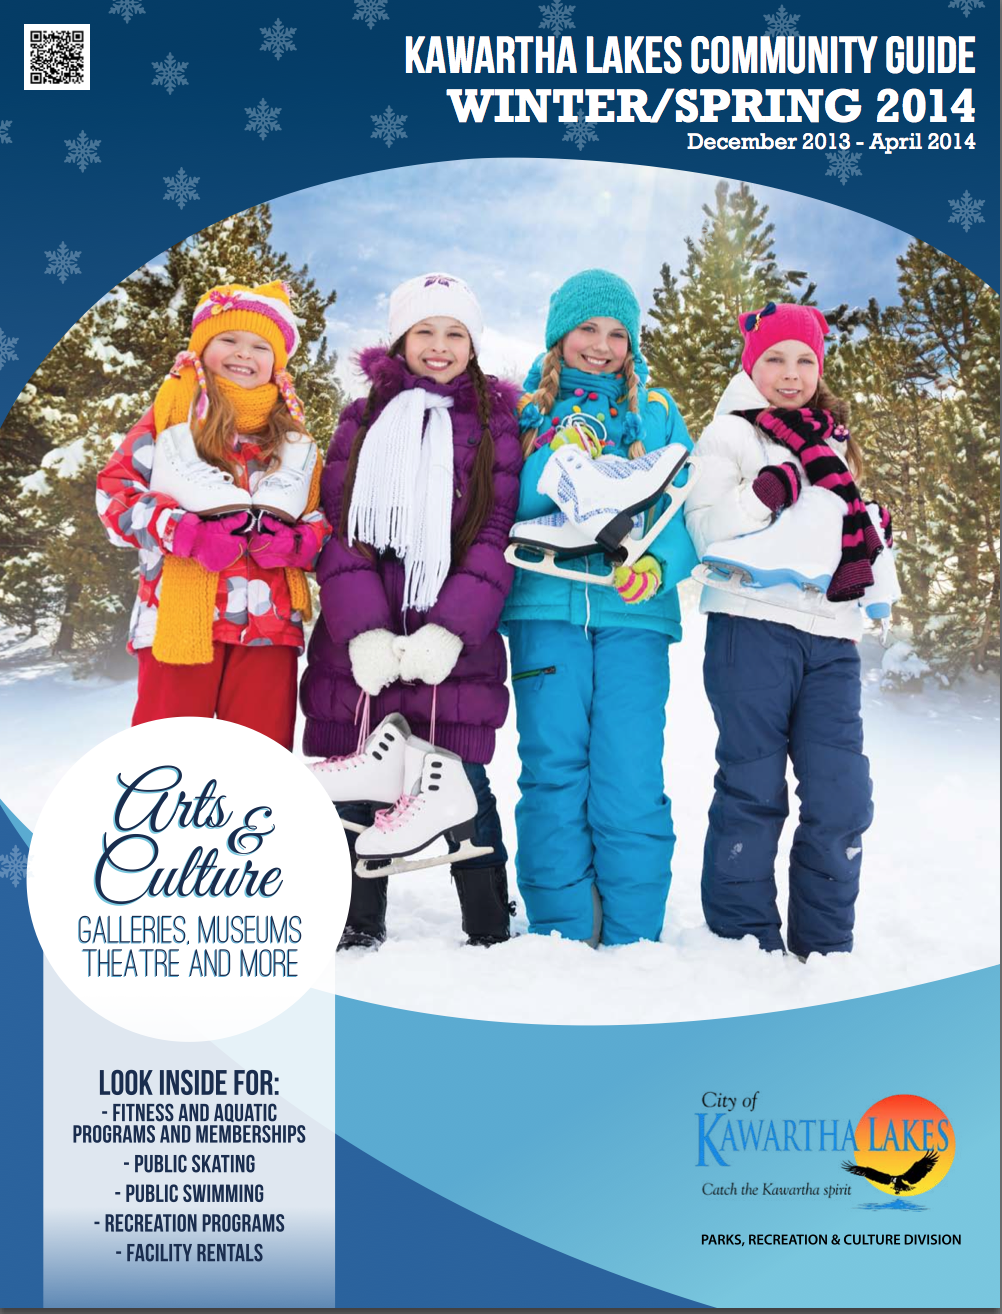 Kawartha Lakes  Winter -Spring 2014 Community Guide Contains Family -Friendly activities for the whole family.